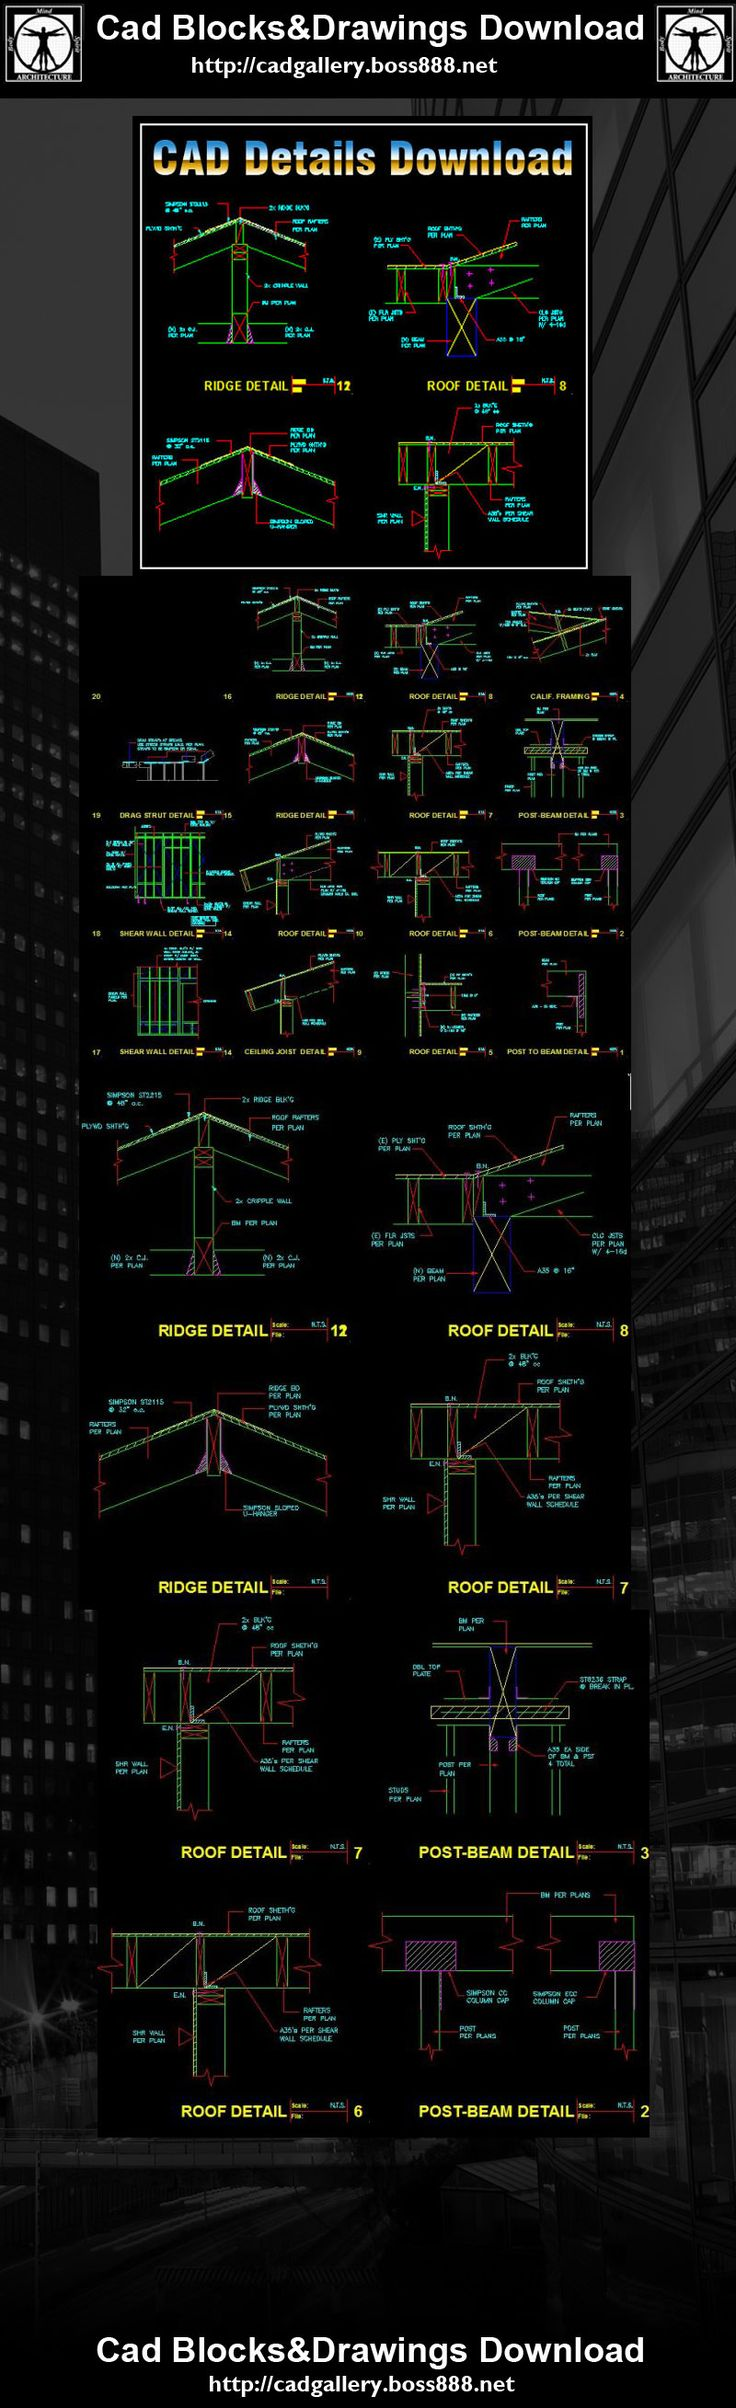 Construction Details Drawings,Construction CAD drawings downloadable in dwg files,Building Details,Architecture Drawings AutoCAD Blocks | AutoCAD Symbols | CAD Drawings | Architecture Details│Landscape Details